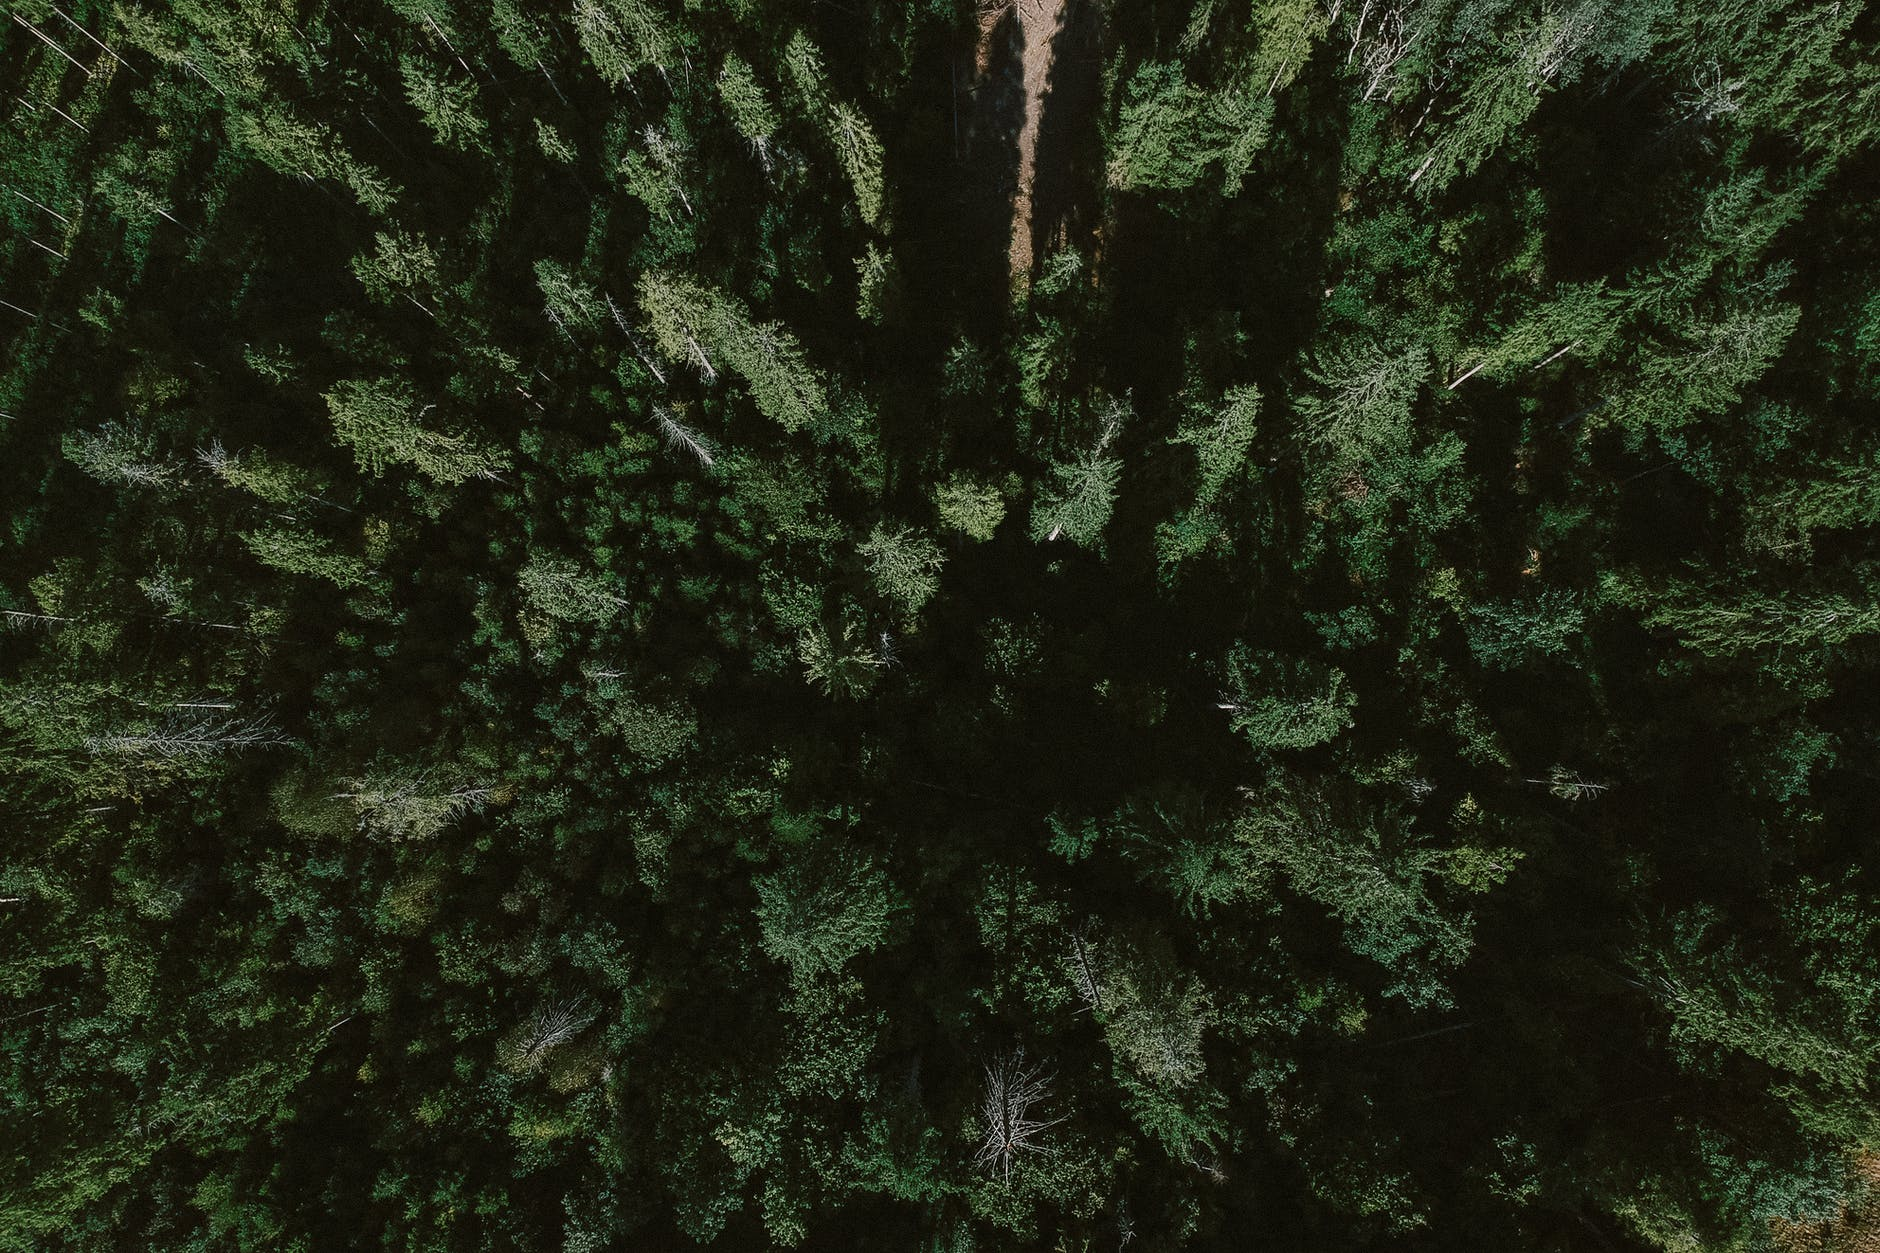 lush evergreen trees growing in endless woods